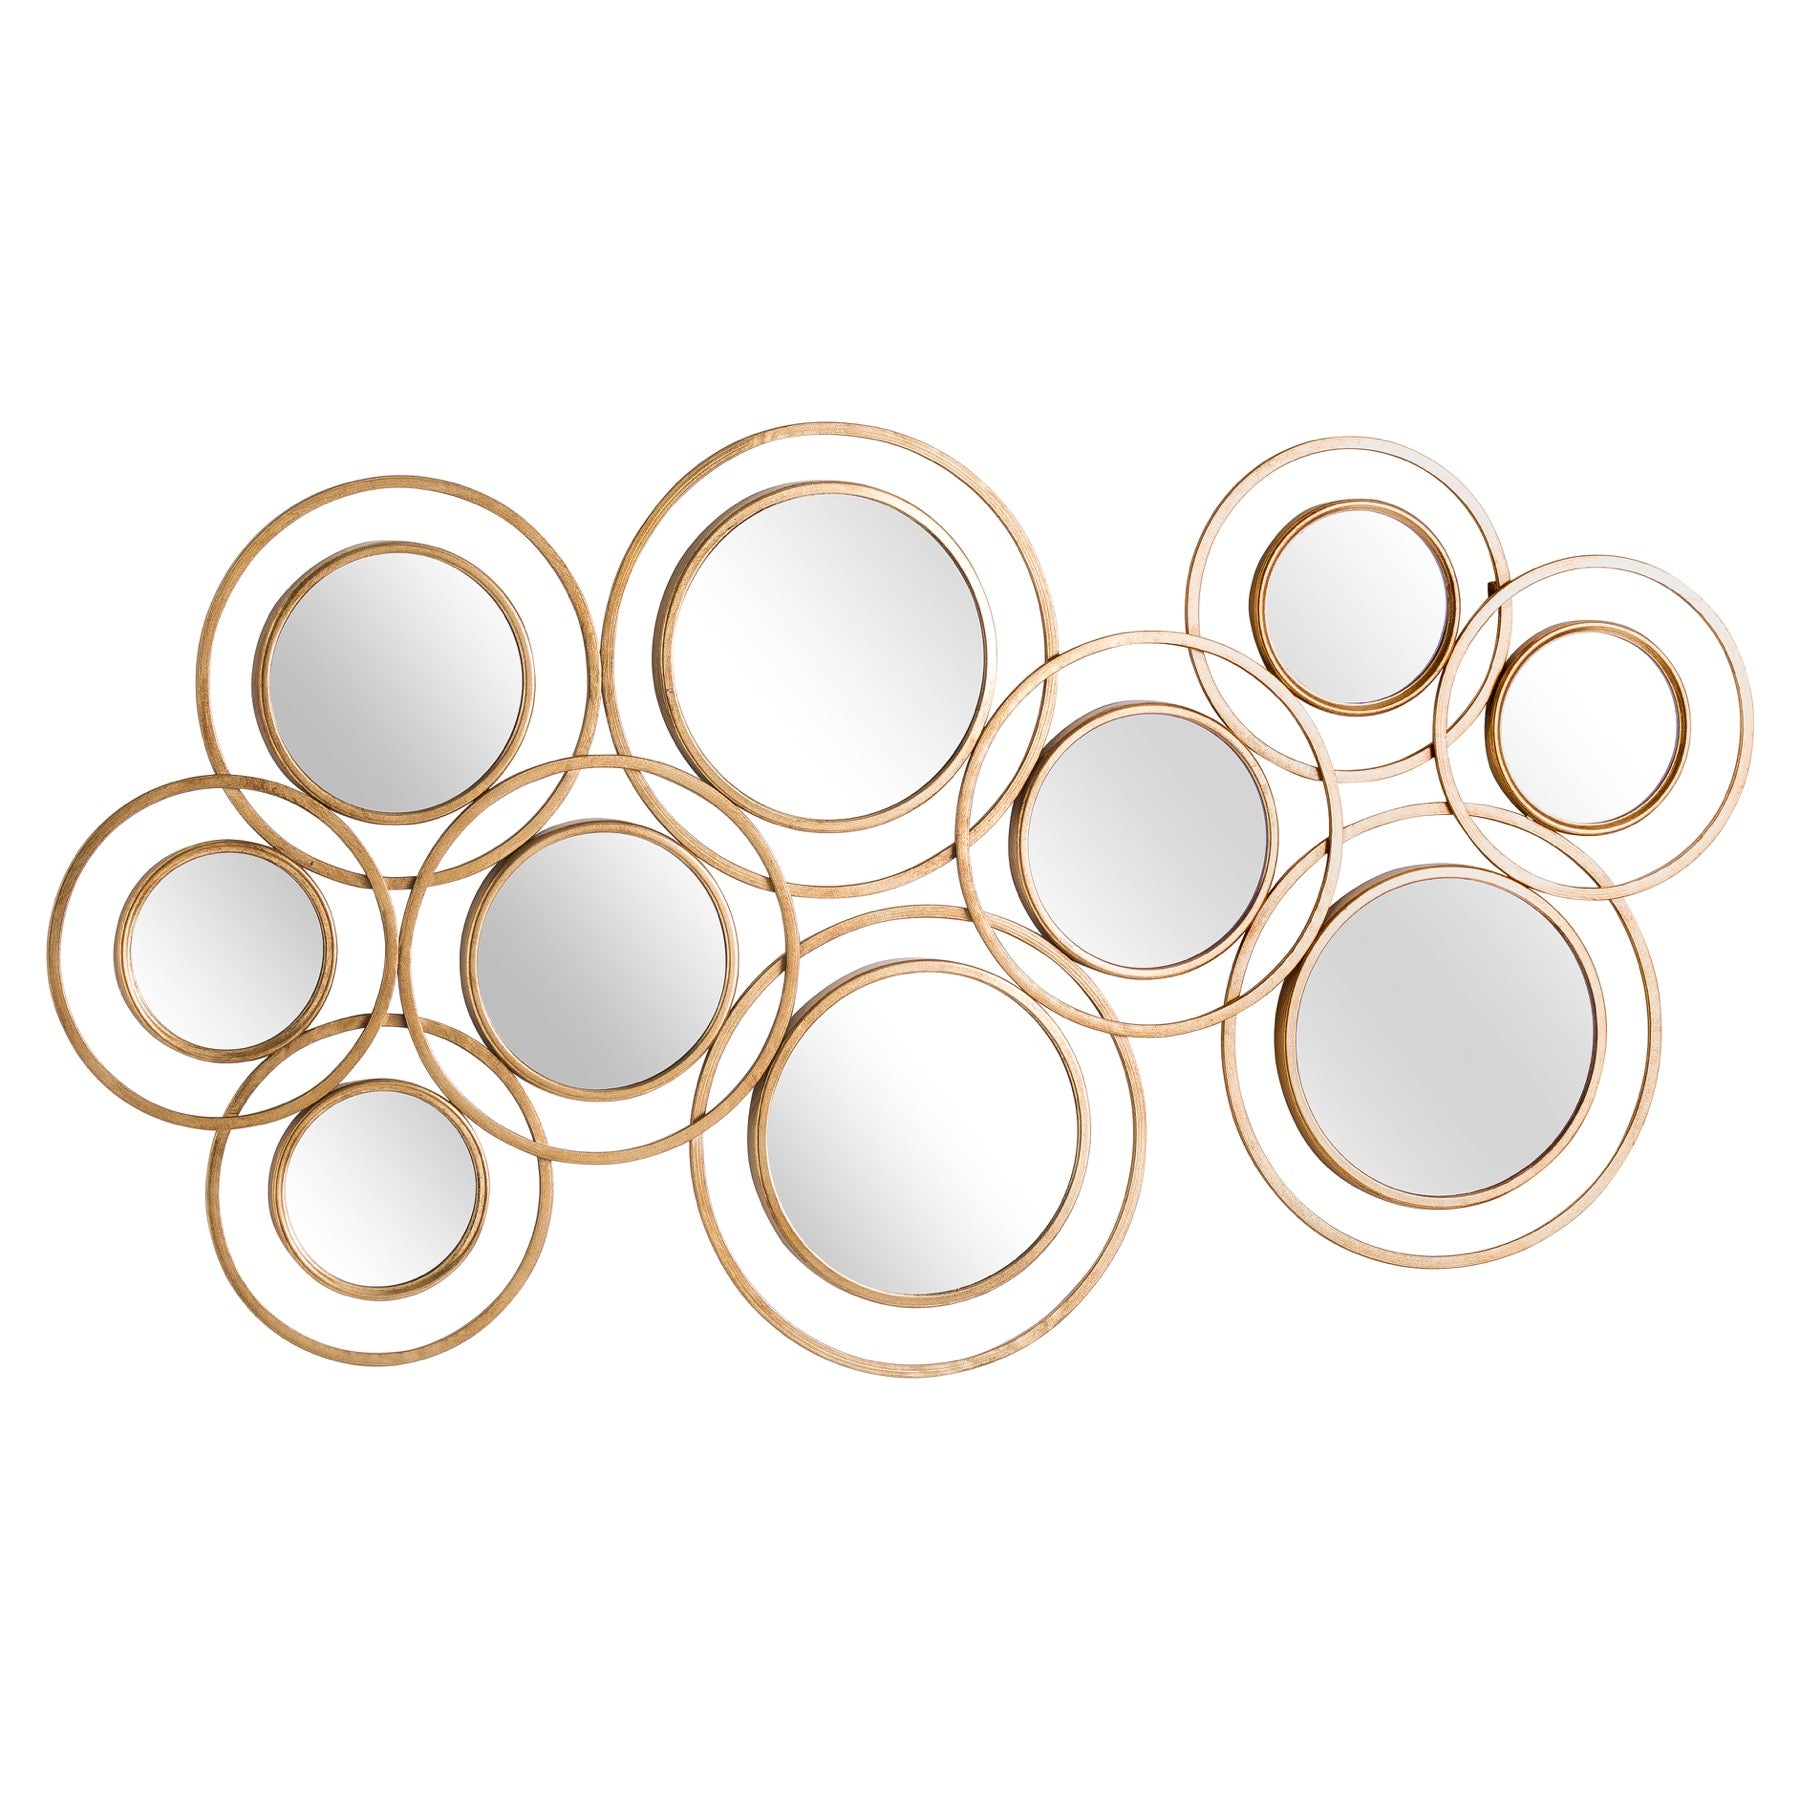 Abstract Gold Circular Wall Mirror